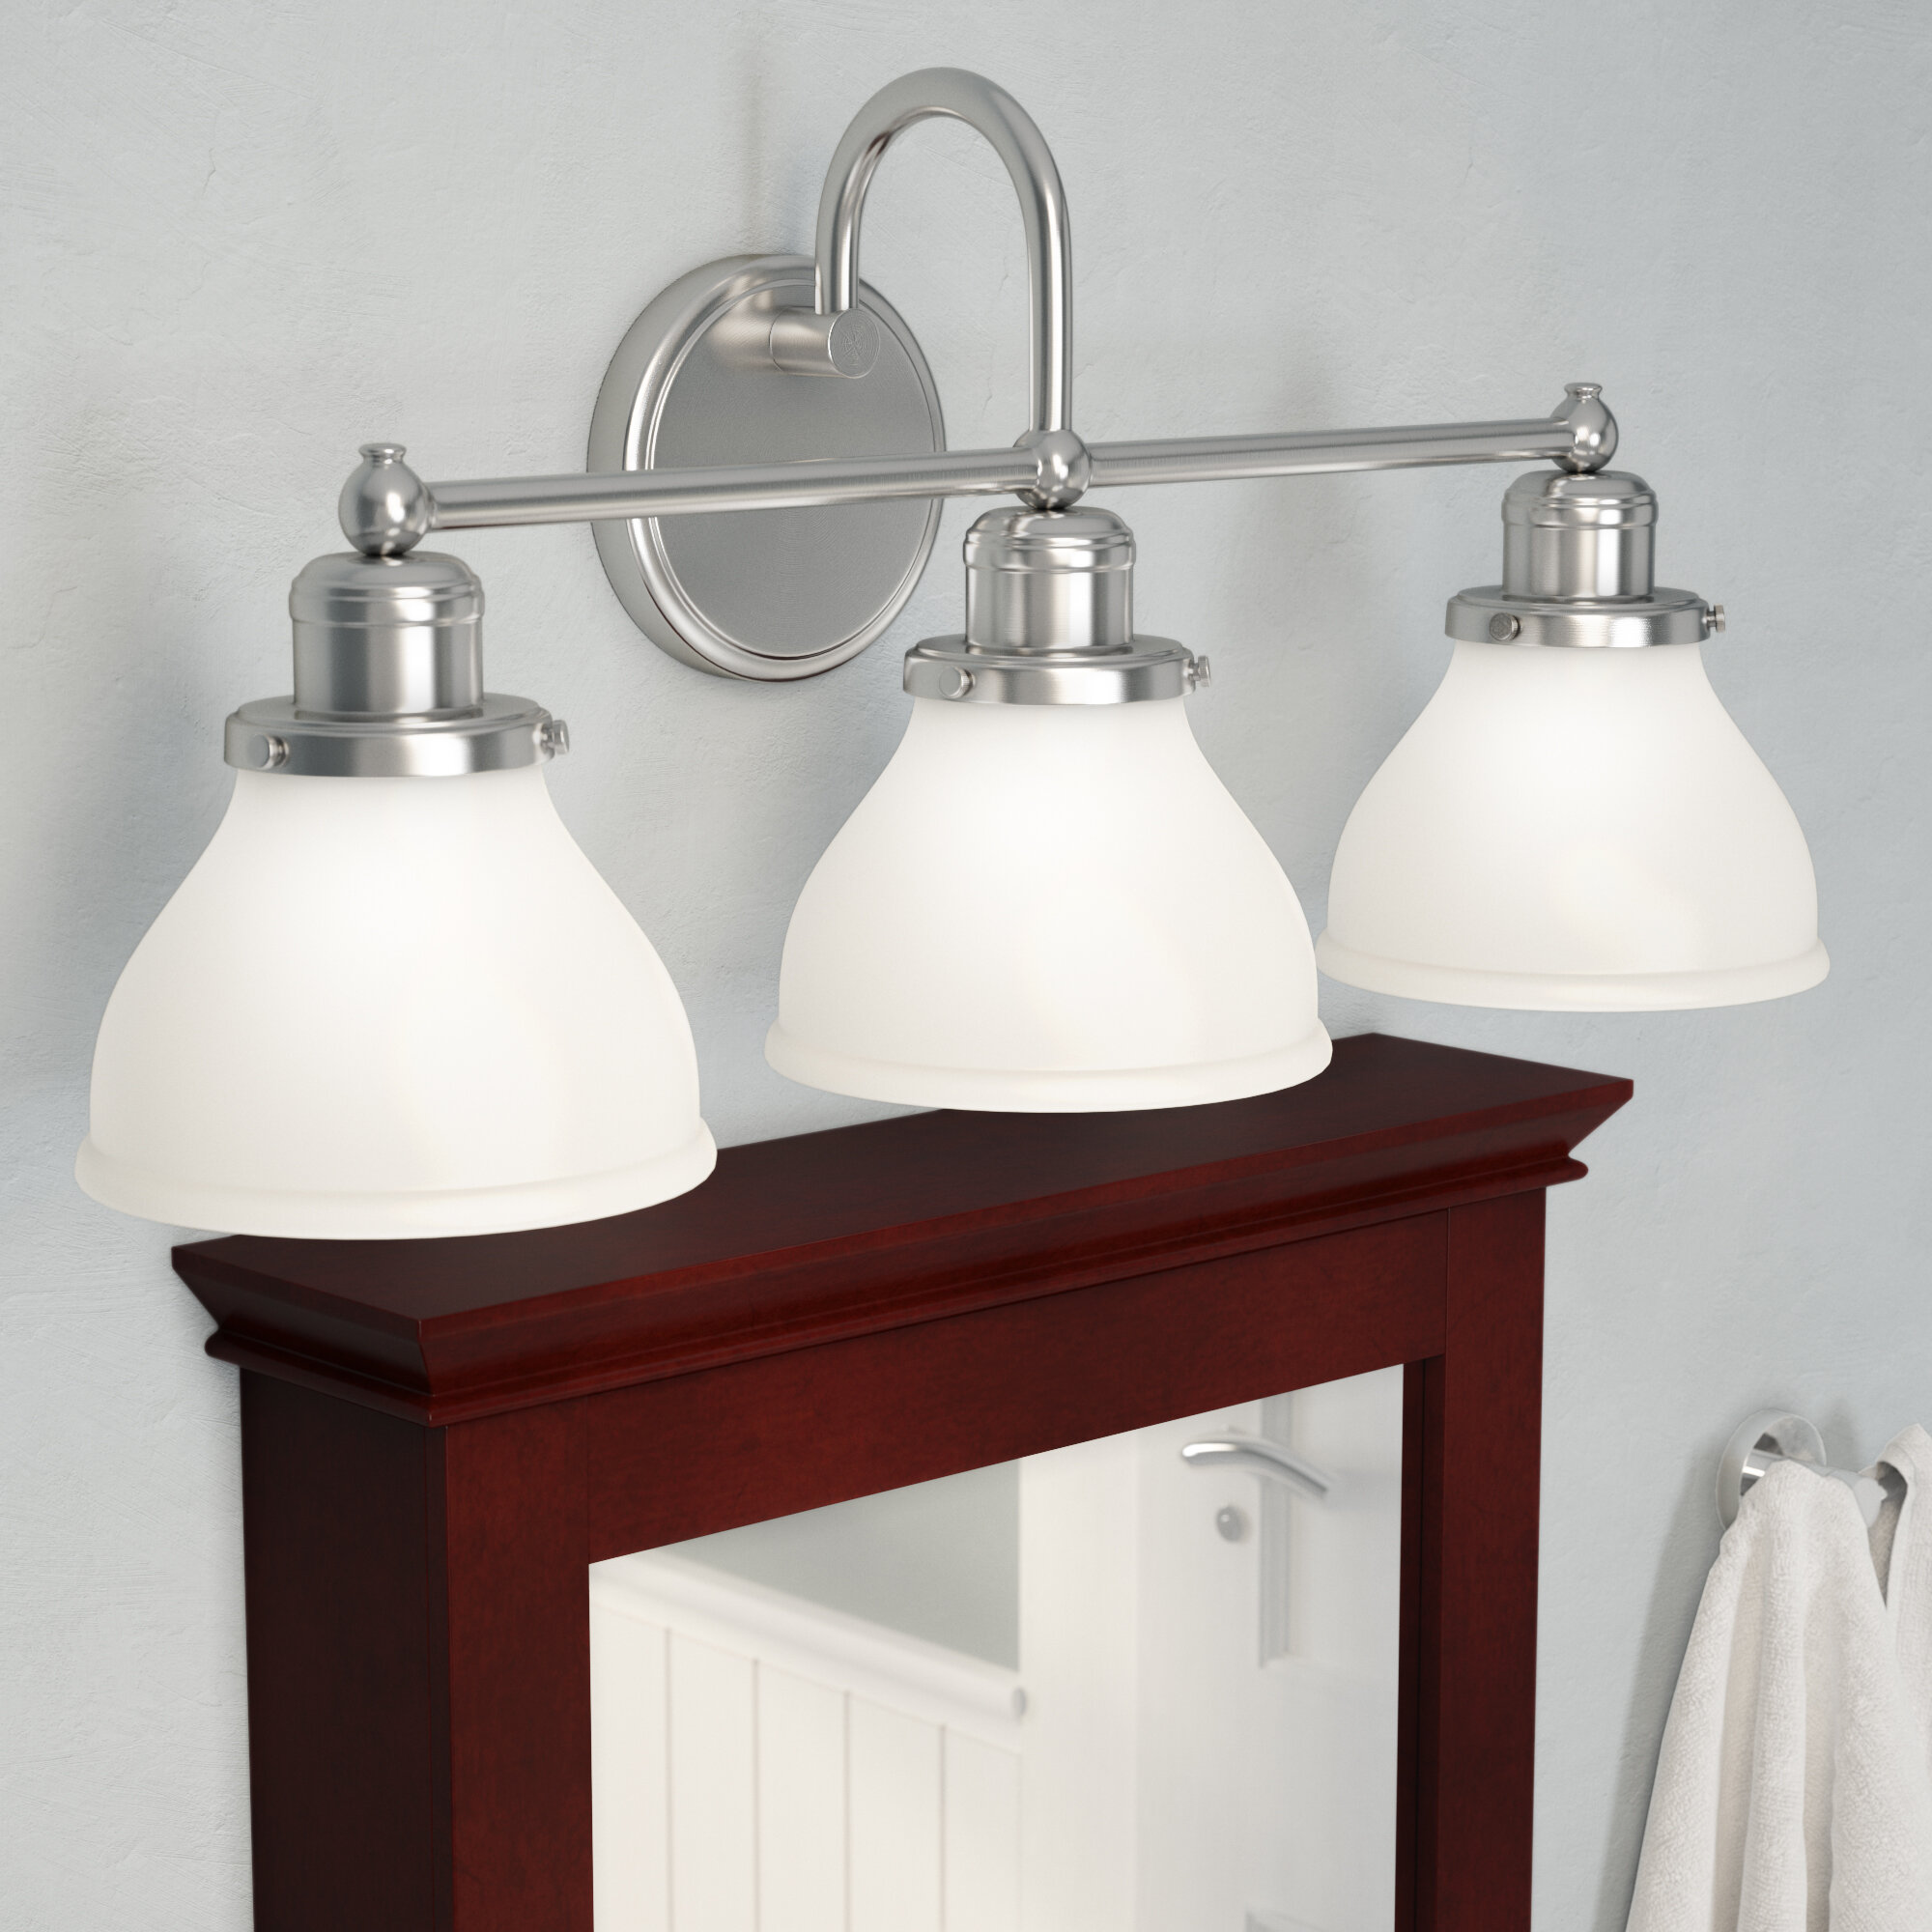 item glass pressed wide cfm and historic shown lighting troy light vanity menlo finish inch bronze clear bath in deep park